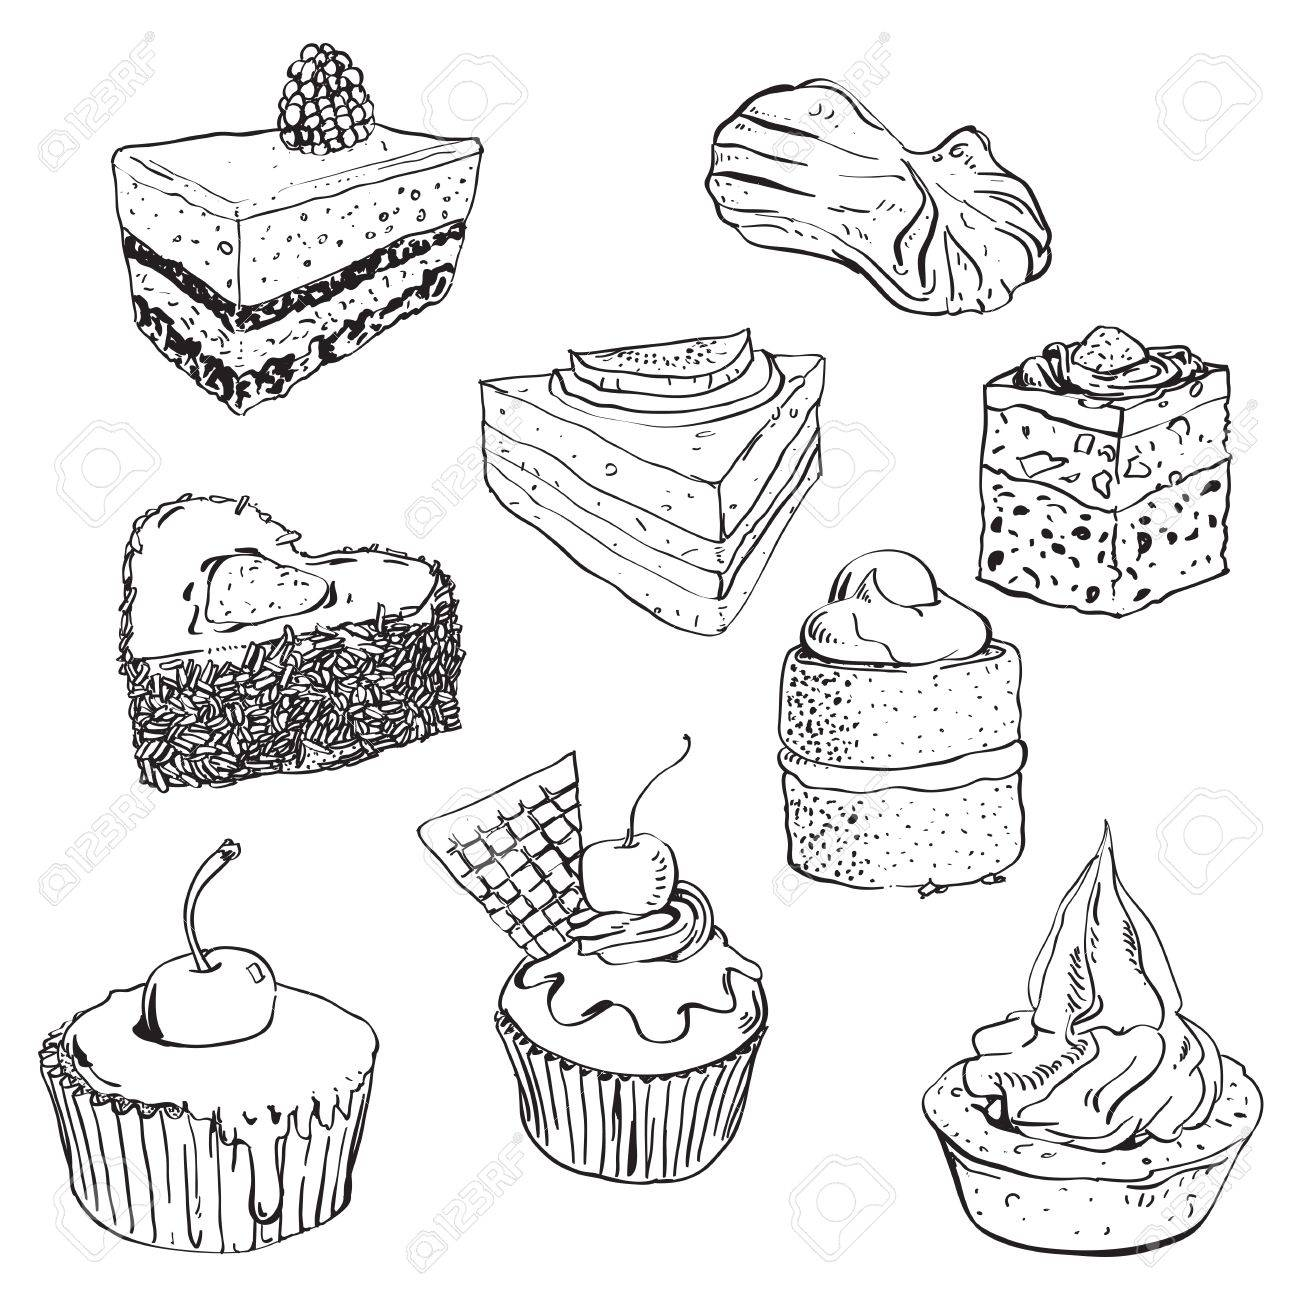 1300x1300 Hand Drawn Illustration Of Some Sweet Cakes Royalty Free Cliparts